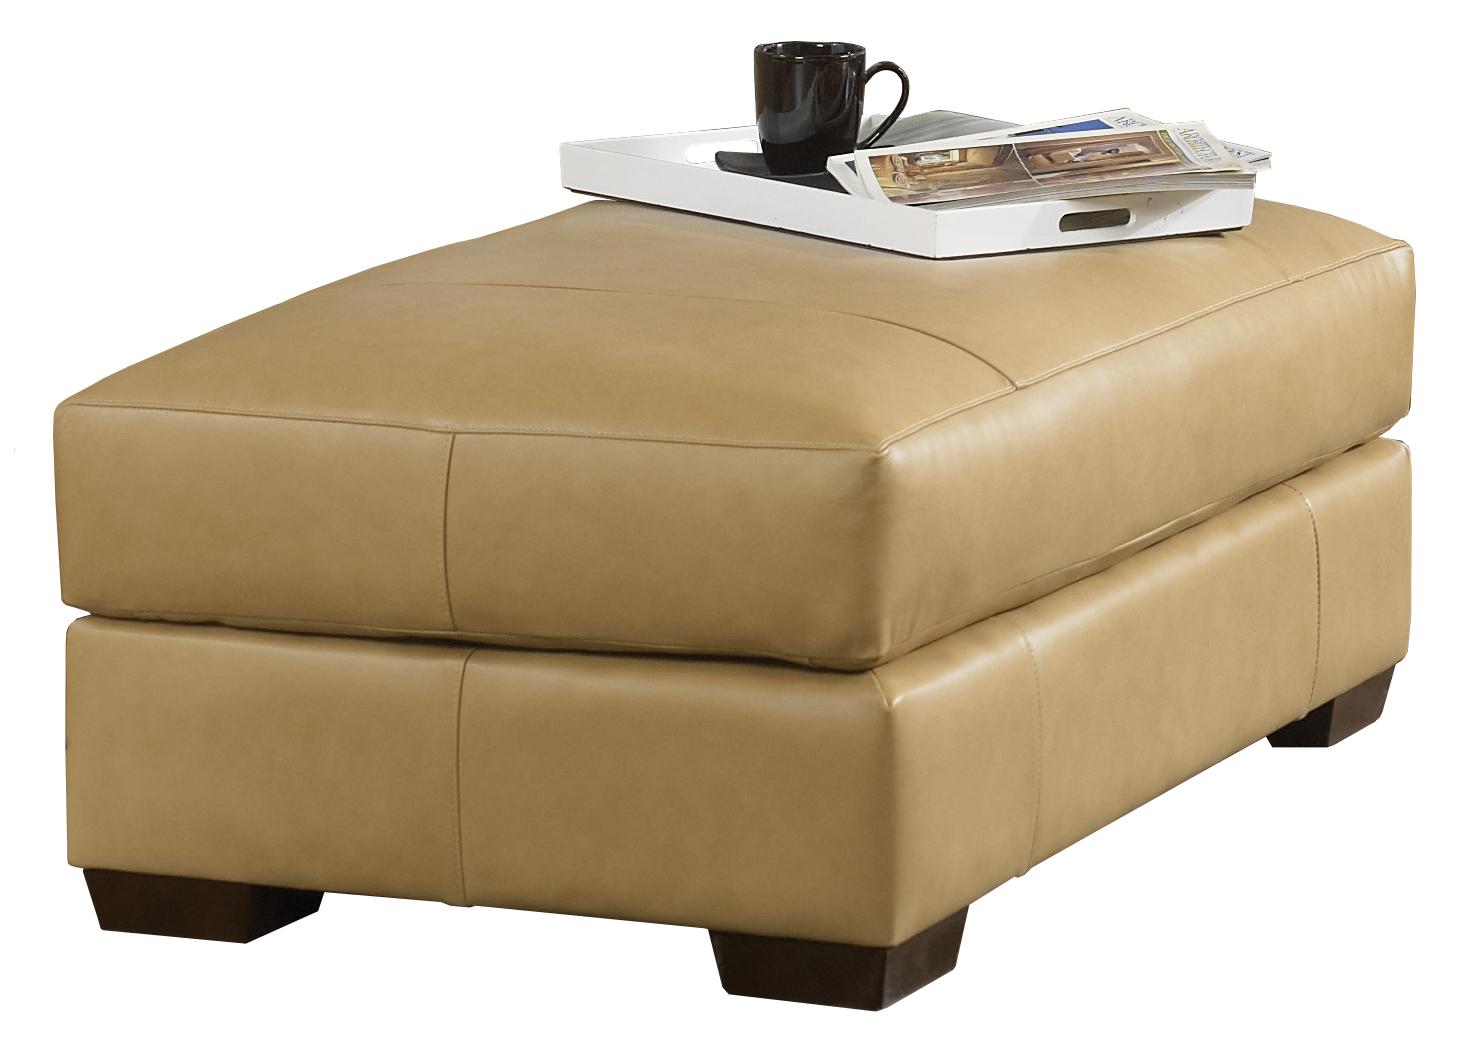 Build An Ottoman Contemporary Ottoman With Top Stitch Tailoring By Smith Brothers